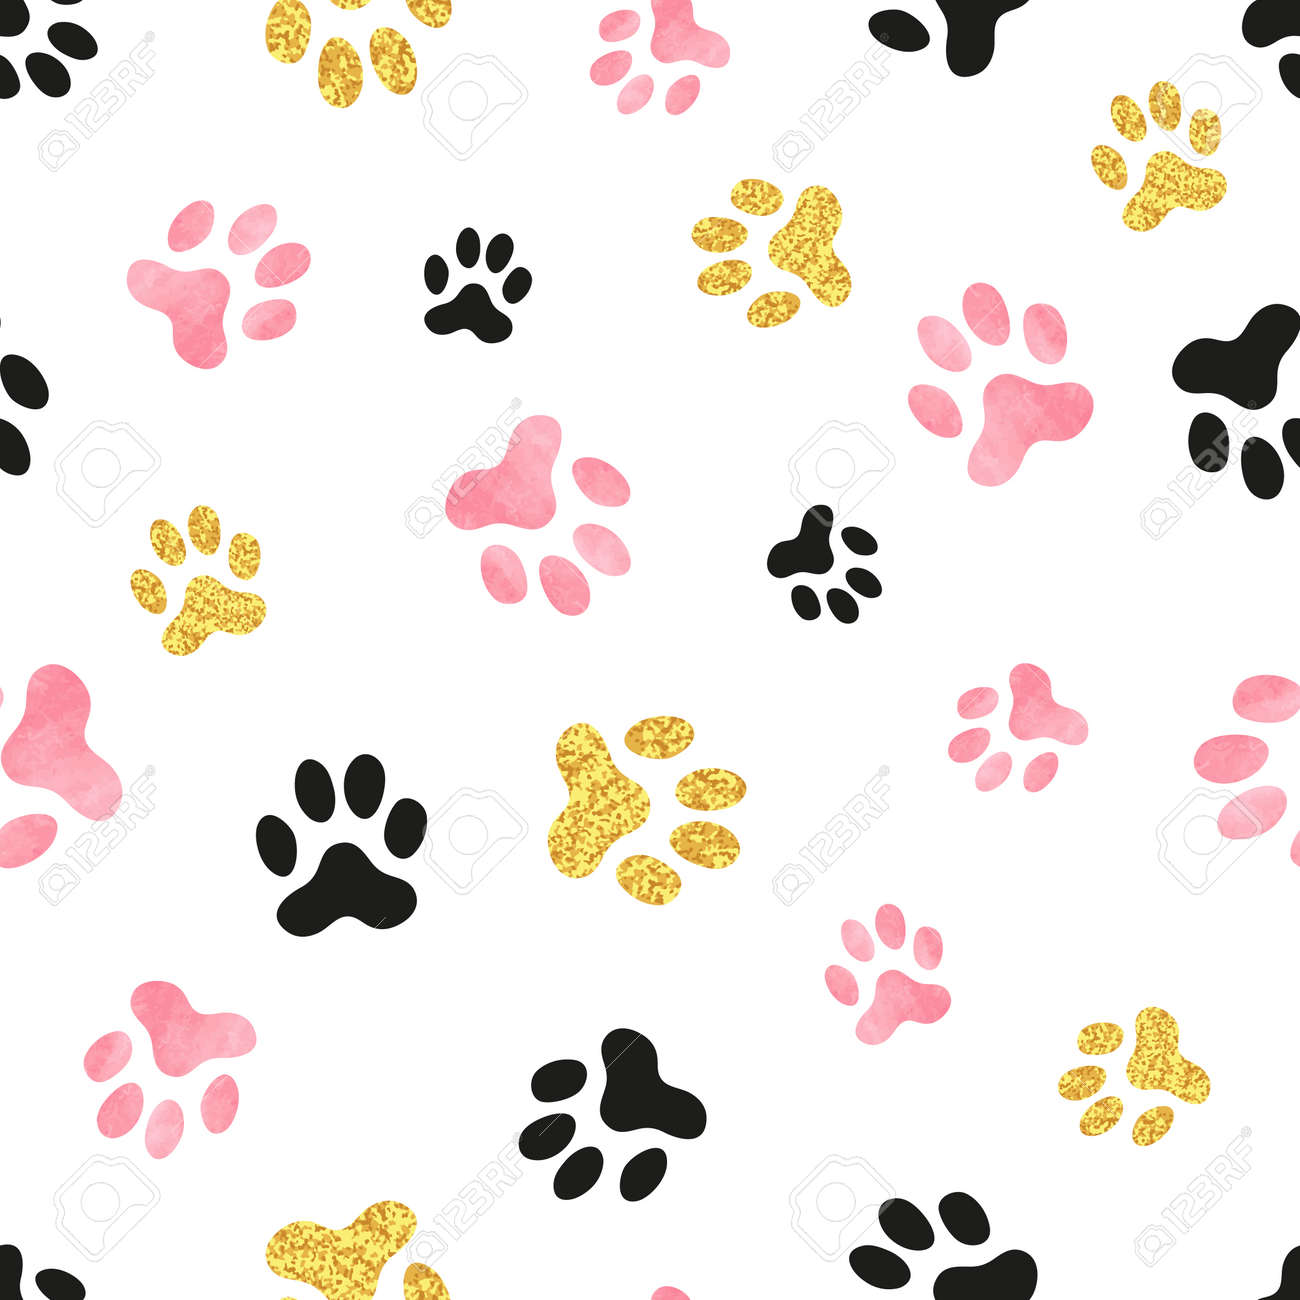 Dog paw print seamless pattern in pink black and golden colors